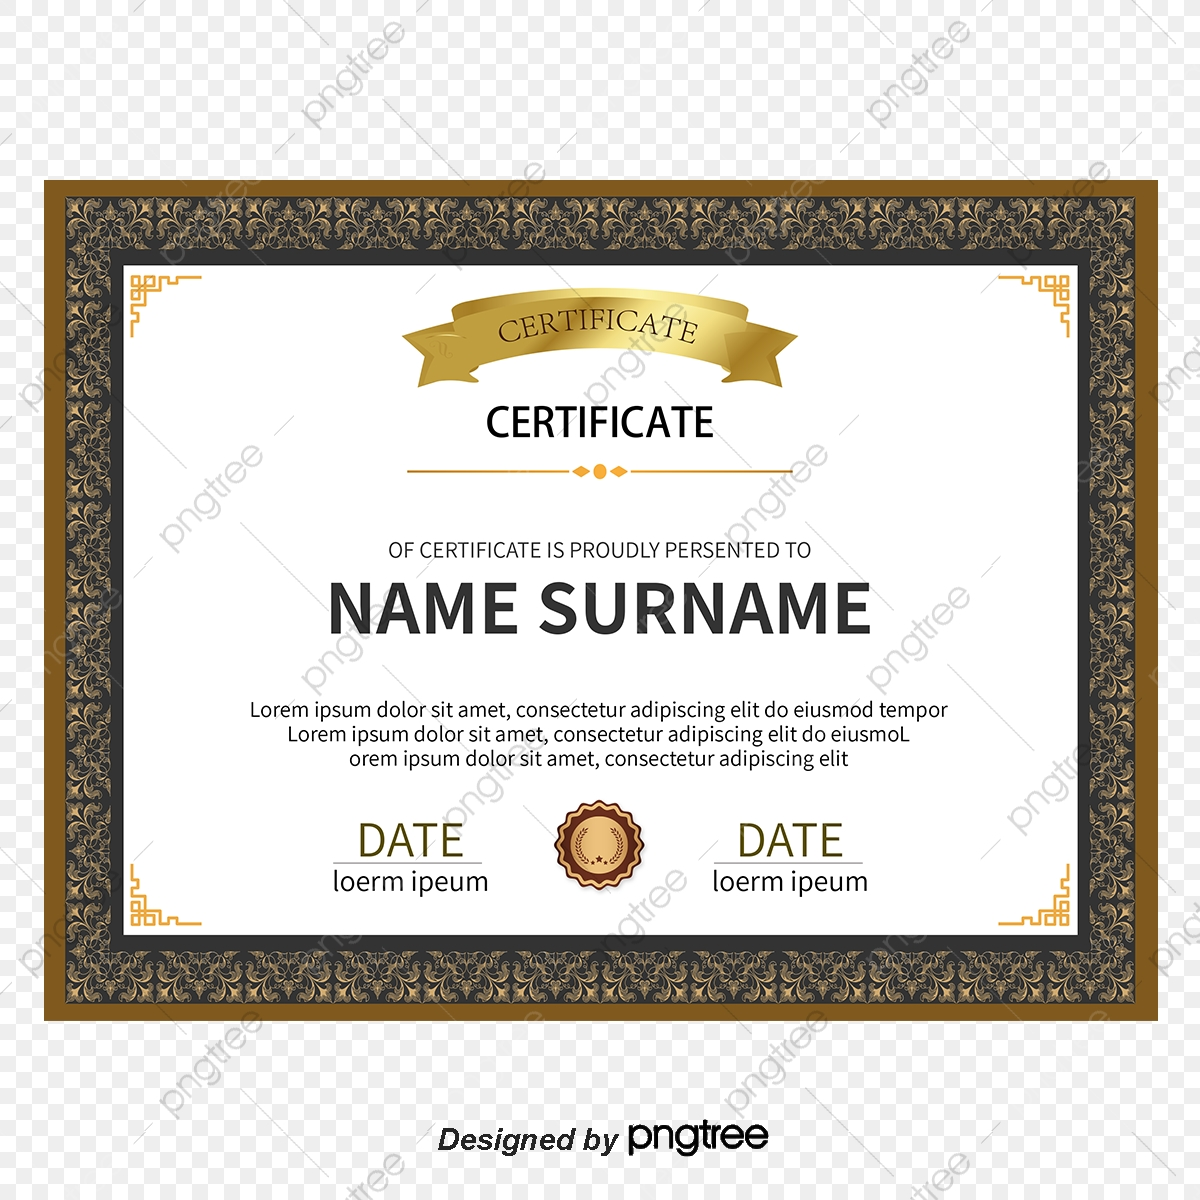 Commendation Certificates Vector, Certificate, Continental Simple.